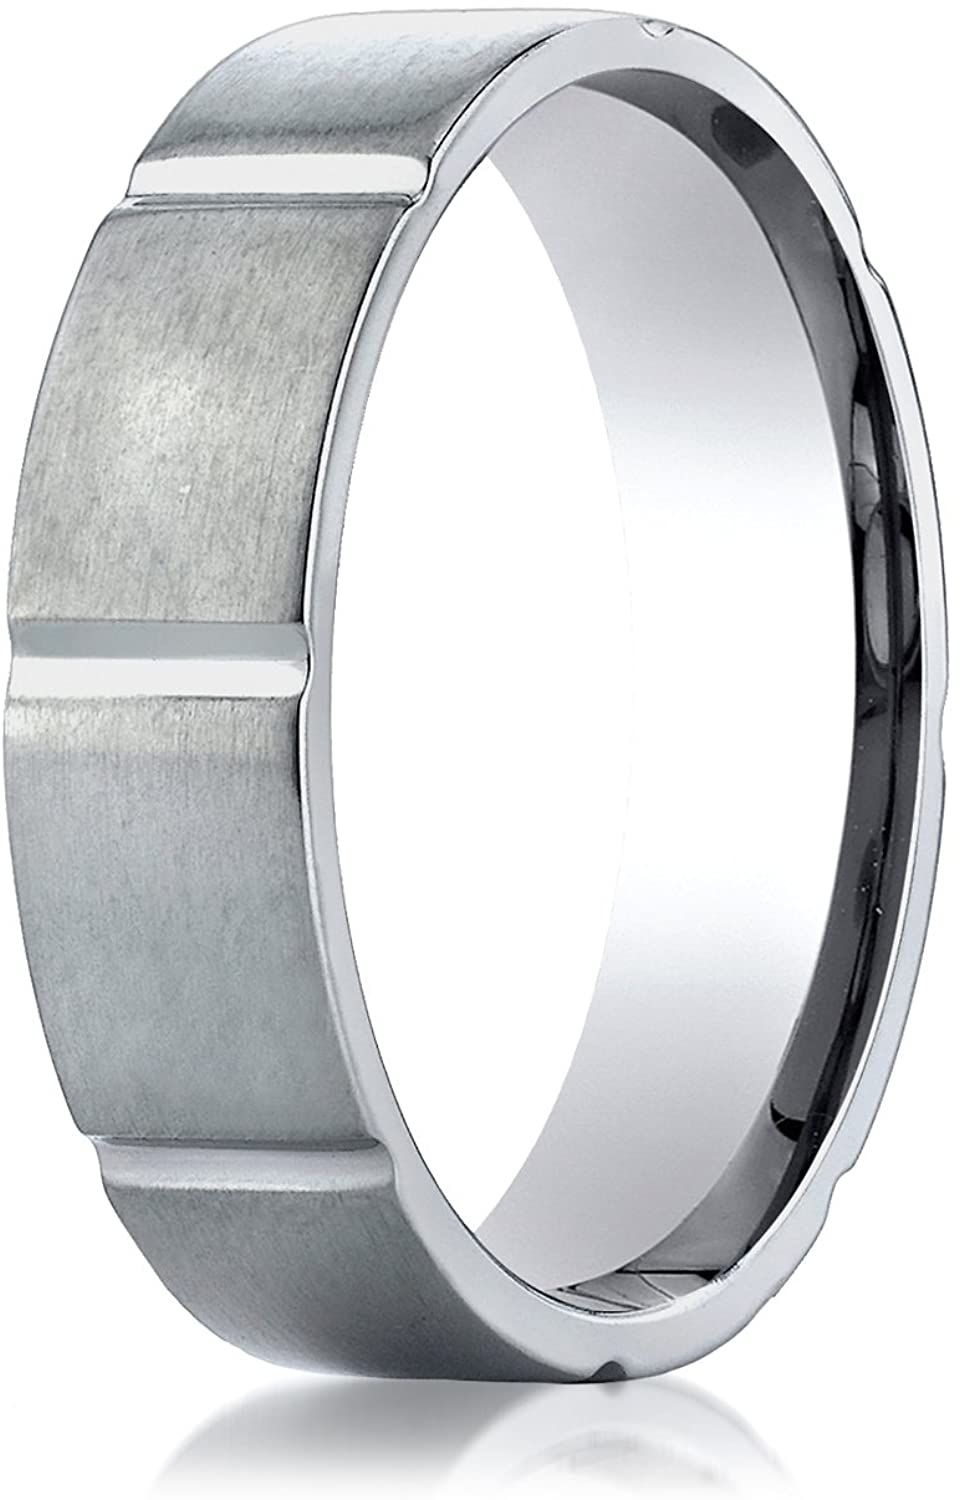 Benchmark Titanium 6mm Comfort-Fit Satin-Finished Vertical Cuts Design Wedding Band Ring, (Sizes 6 - 14)